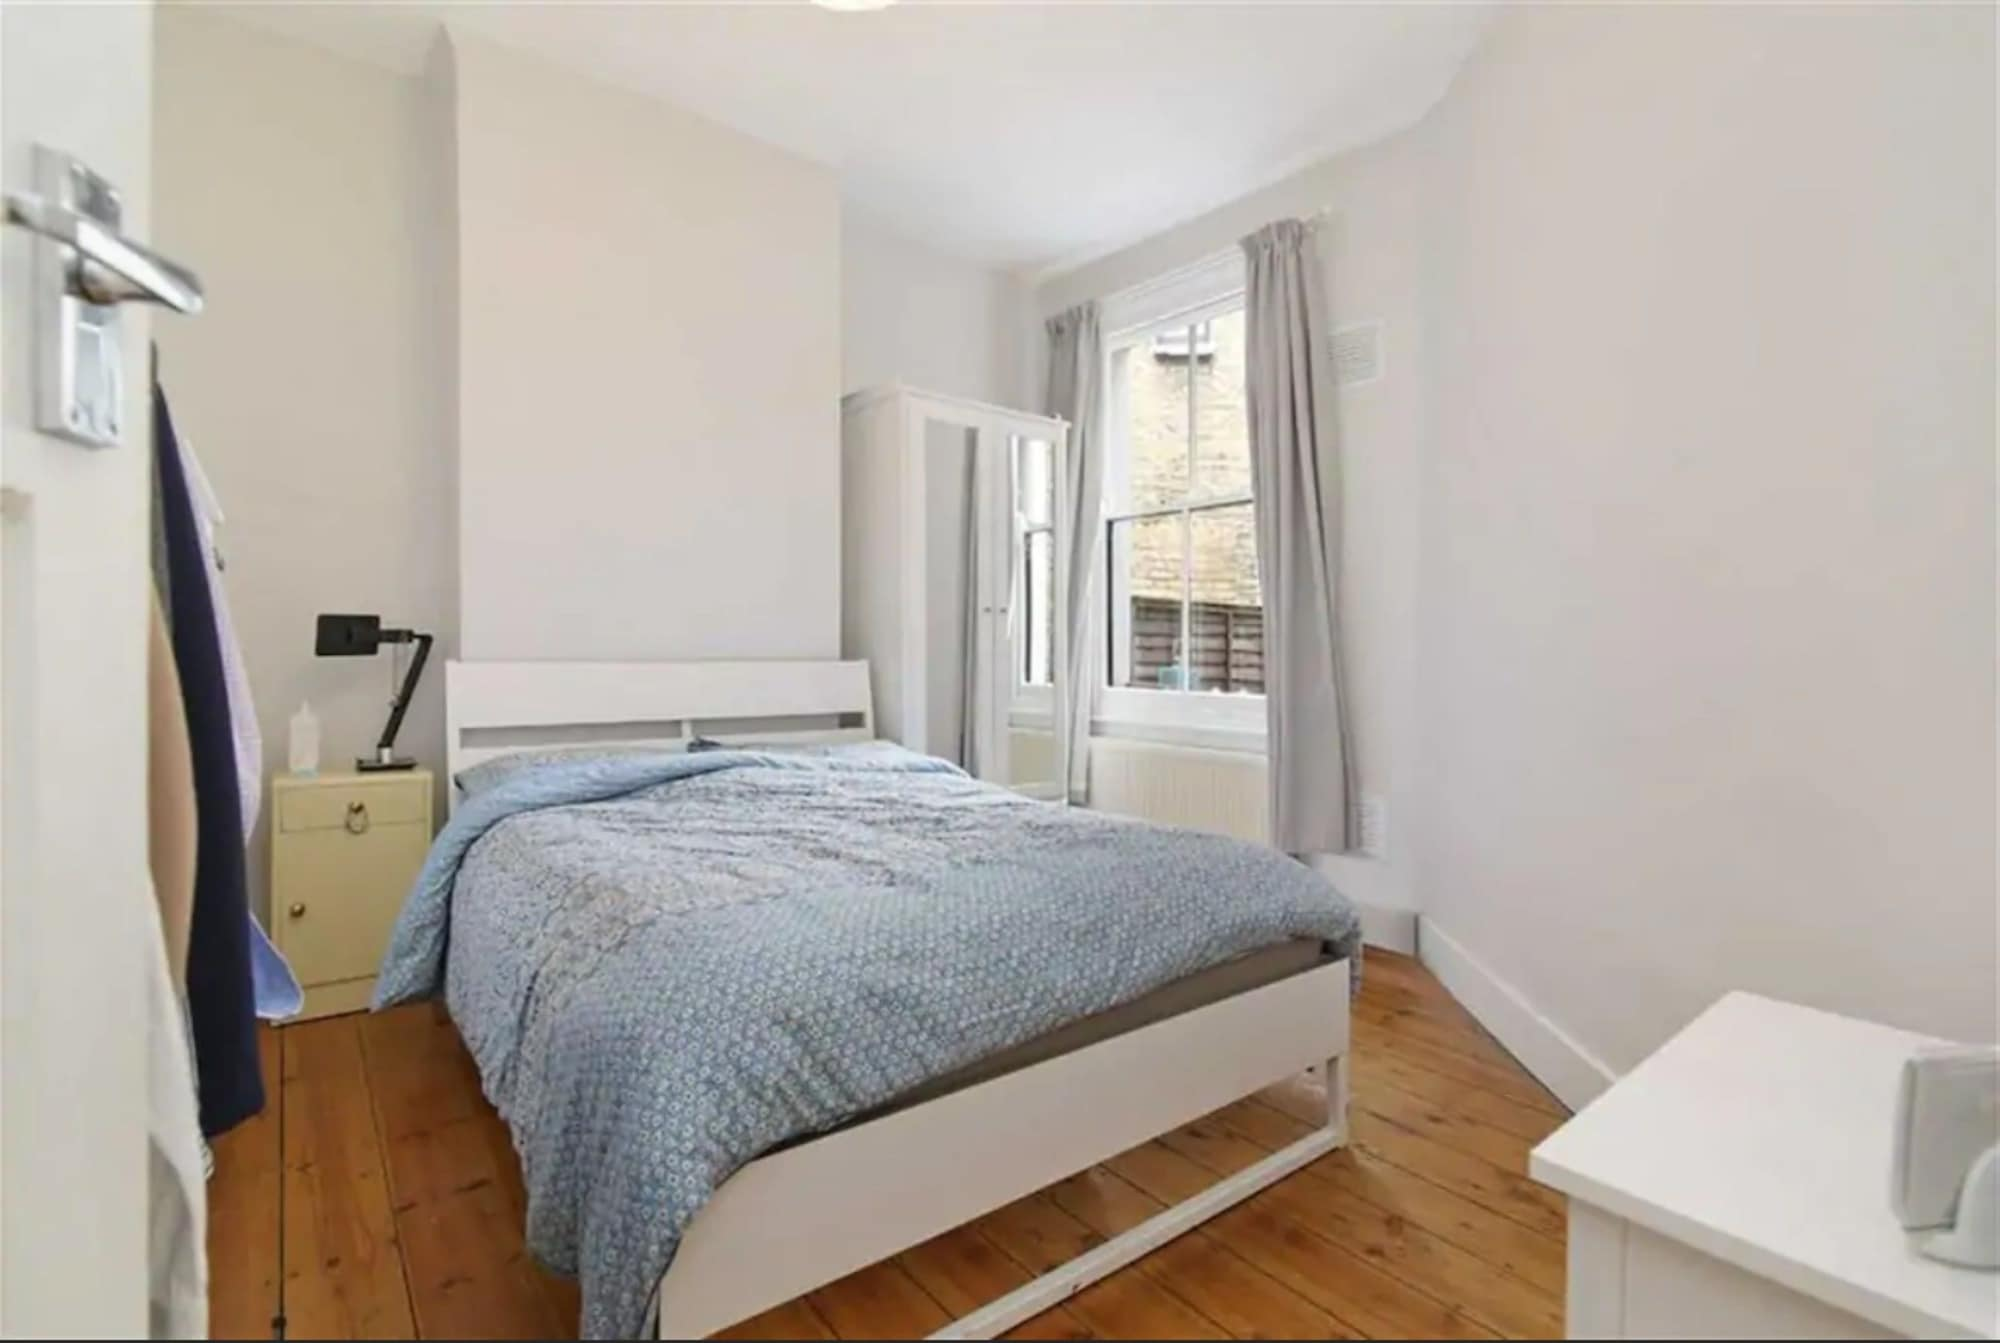 Rustic 1 Bedroom Garden Apartment in the Heart of East London, London